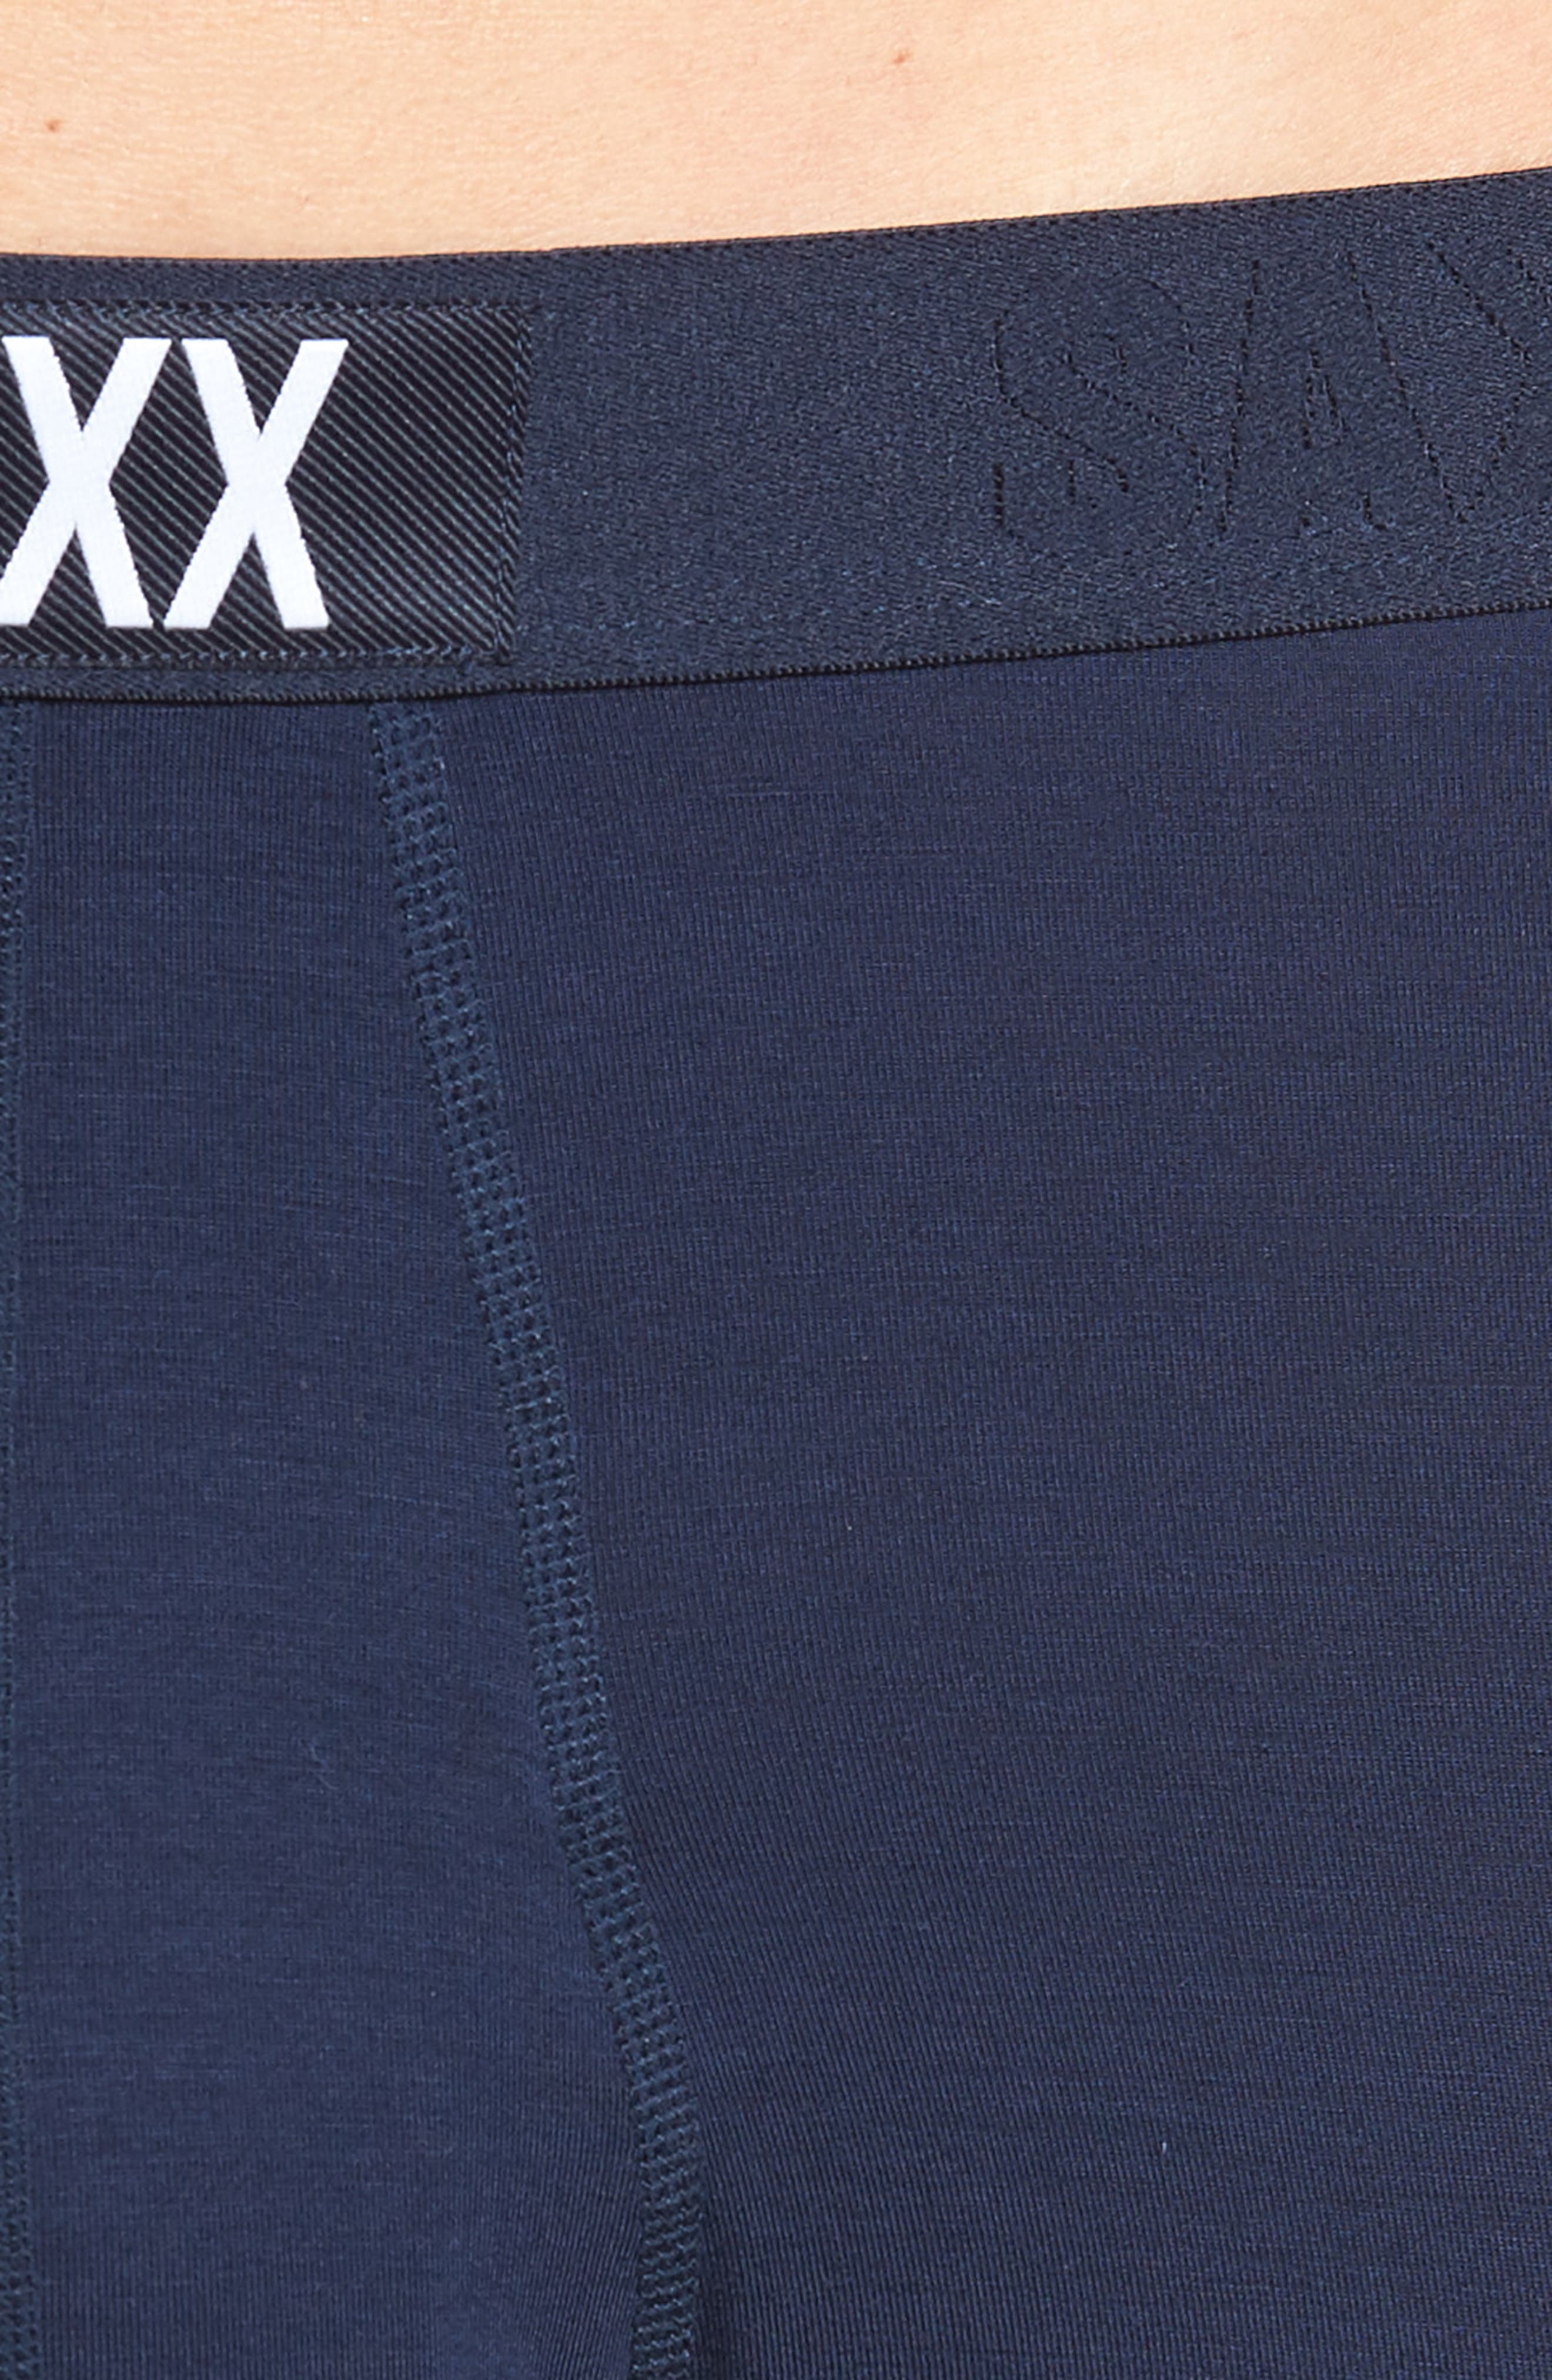 Ultra Boxer Briefs,                             Alternate thumbnail 4, color,                             NAVY